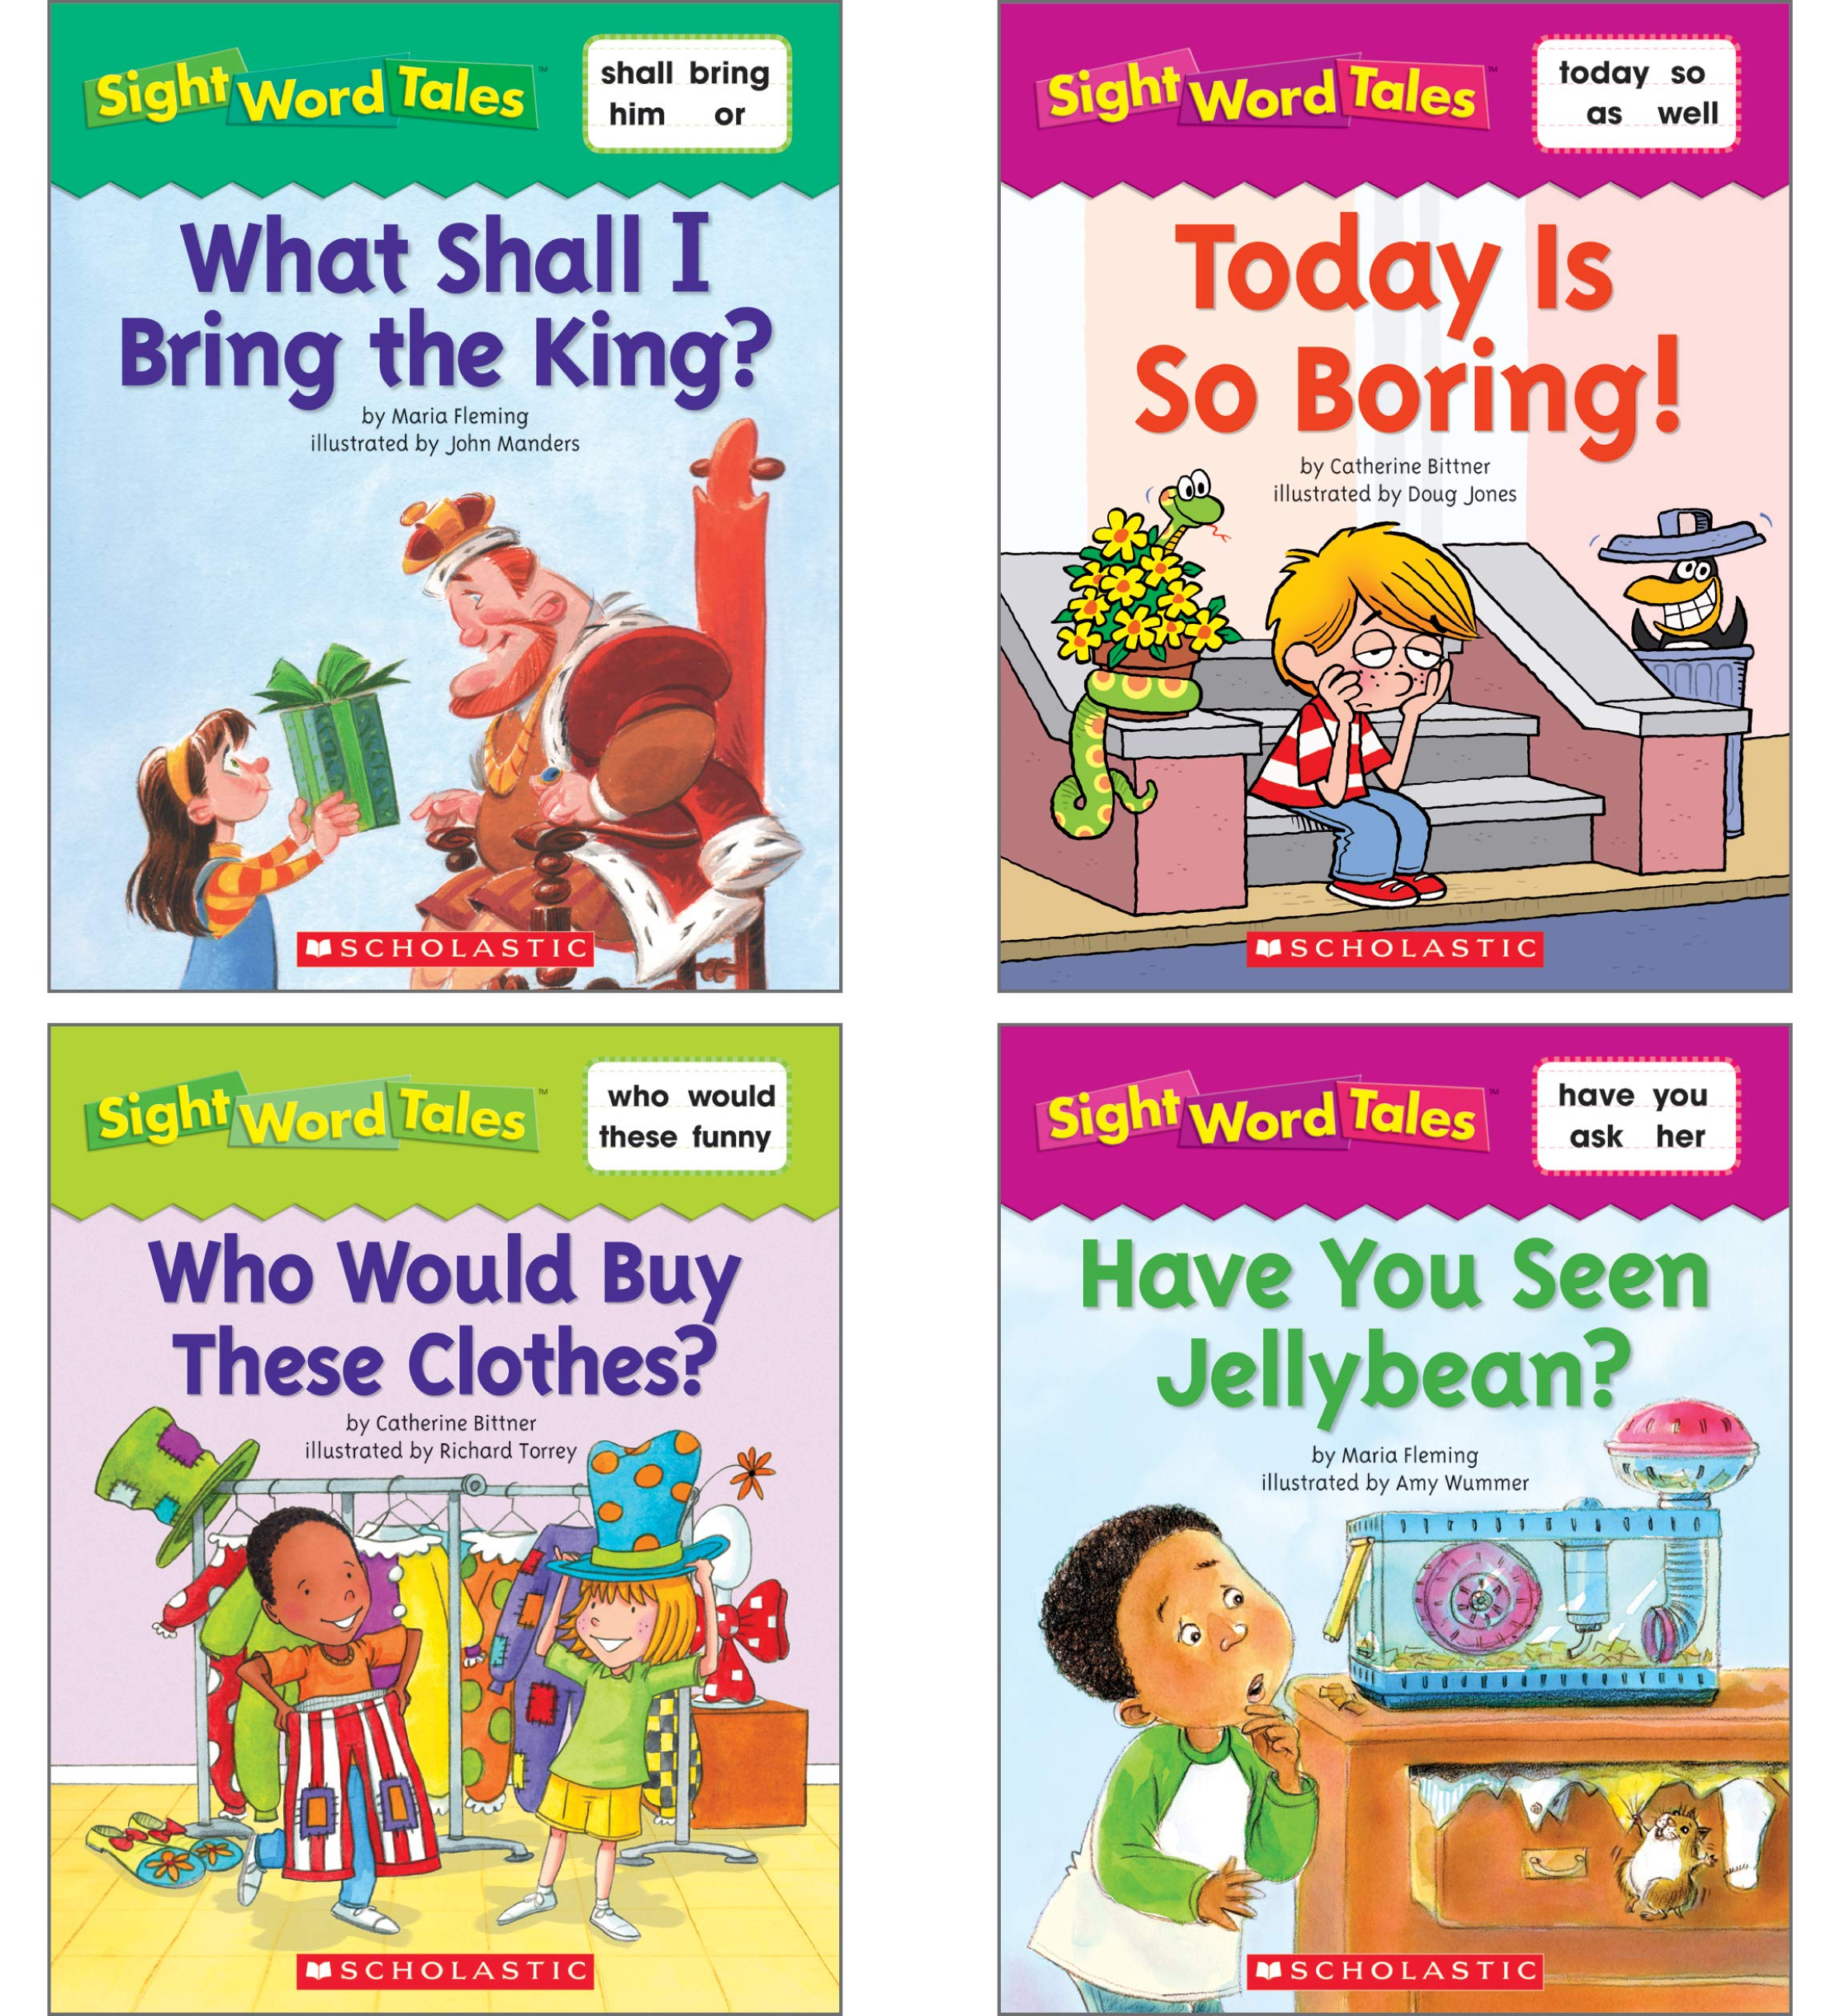 Sight Word Tales book for learning sight words